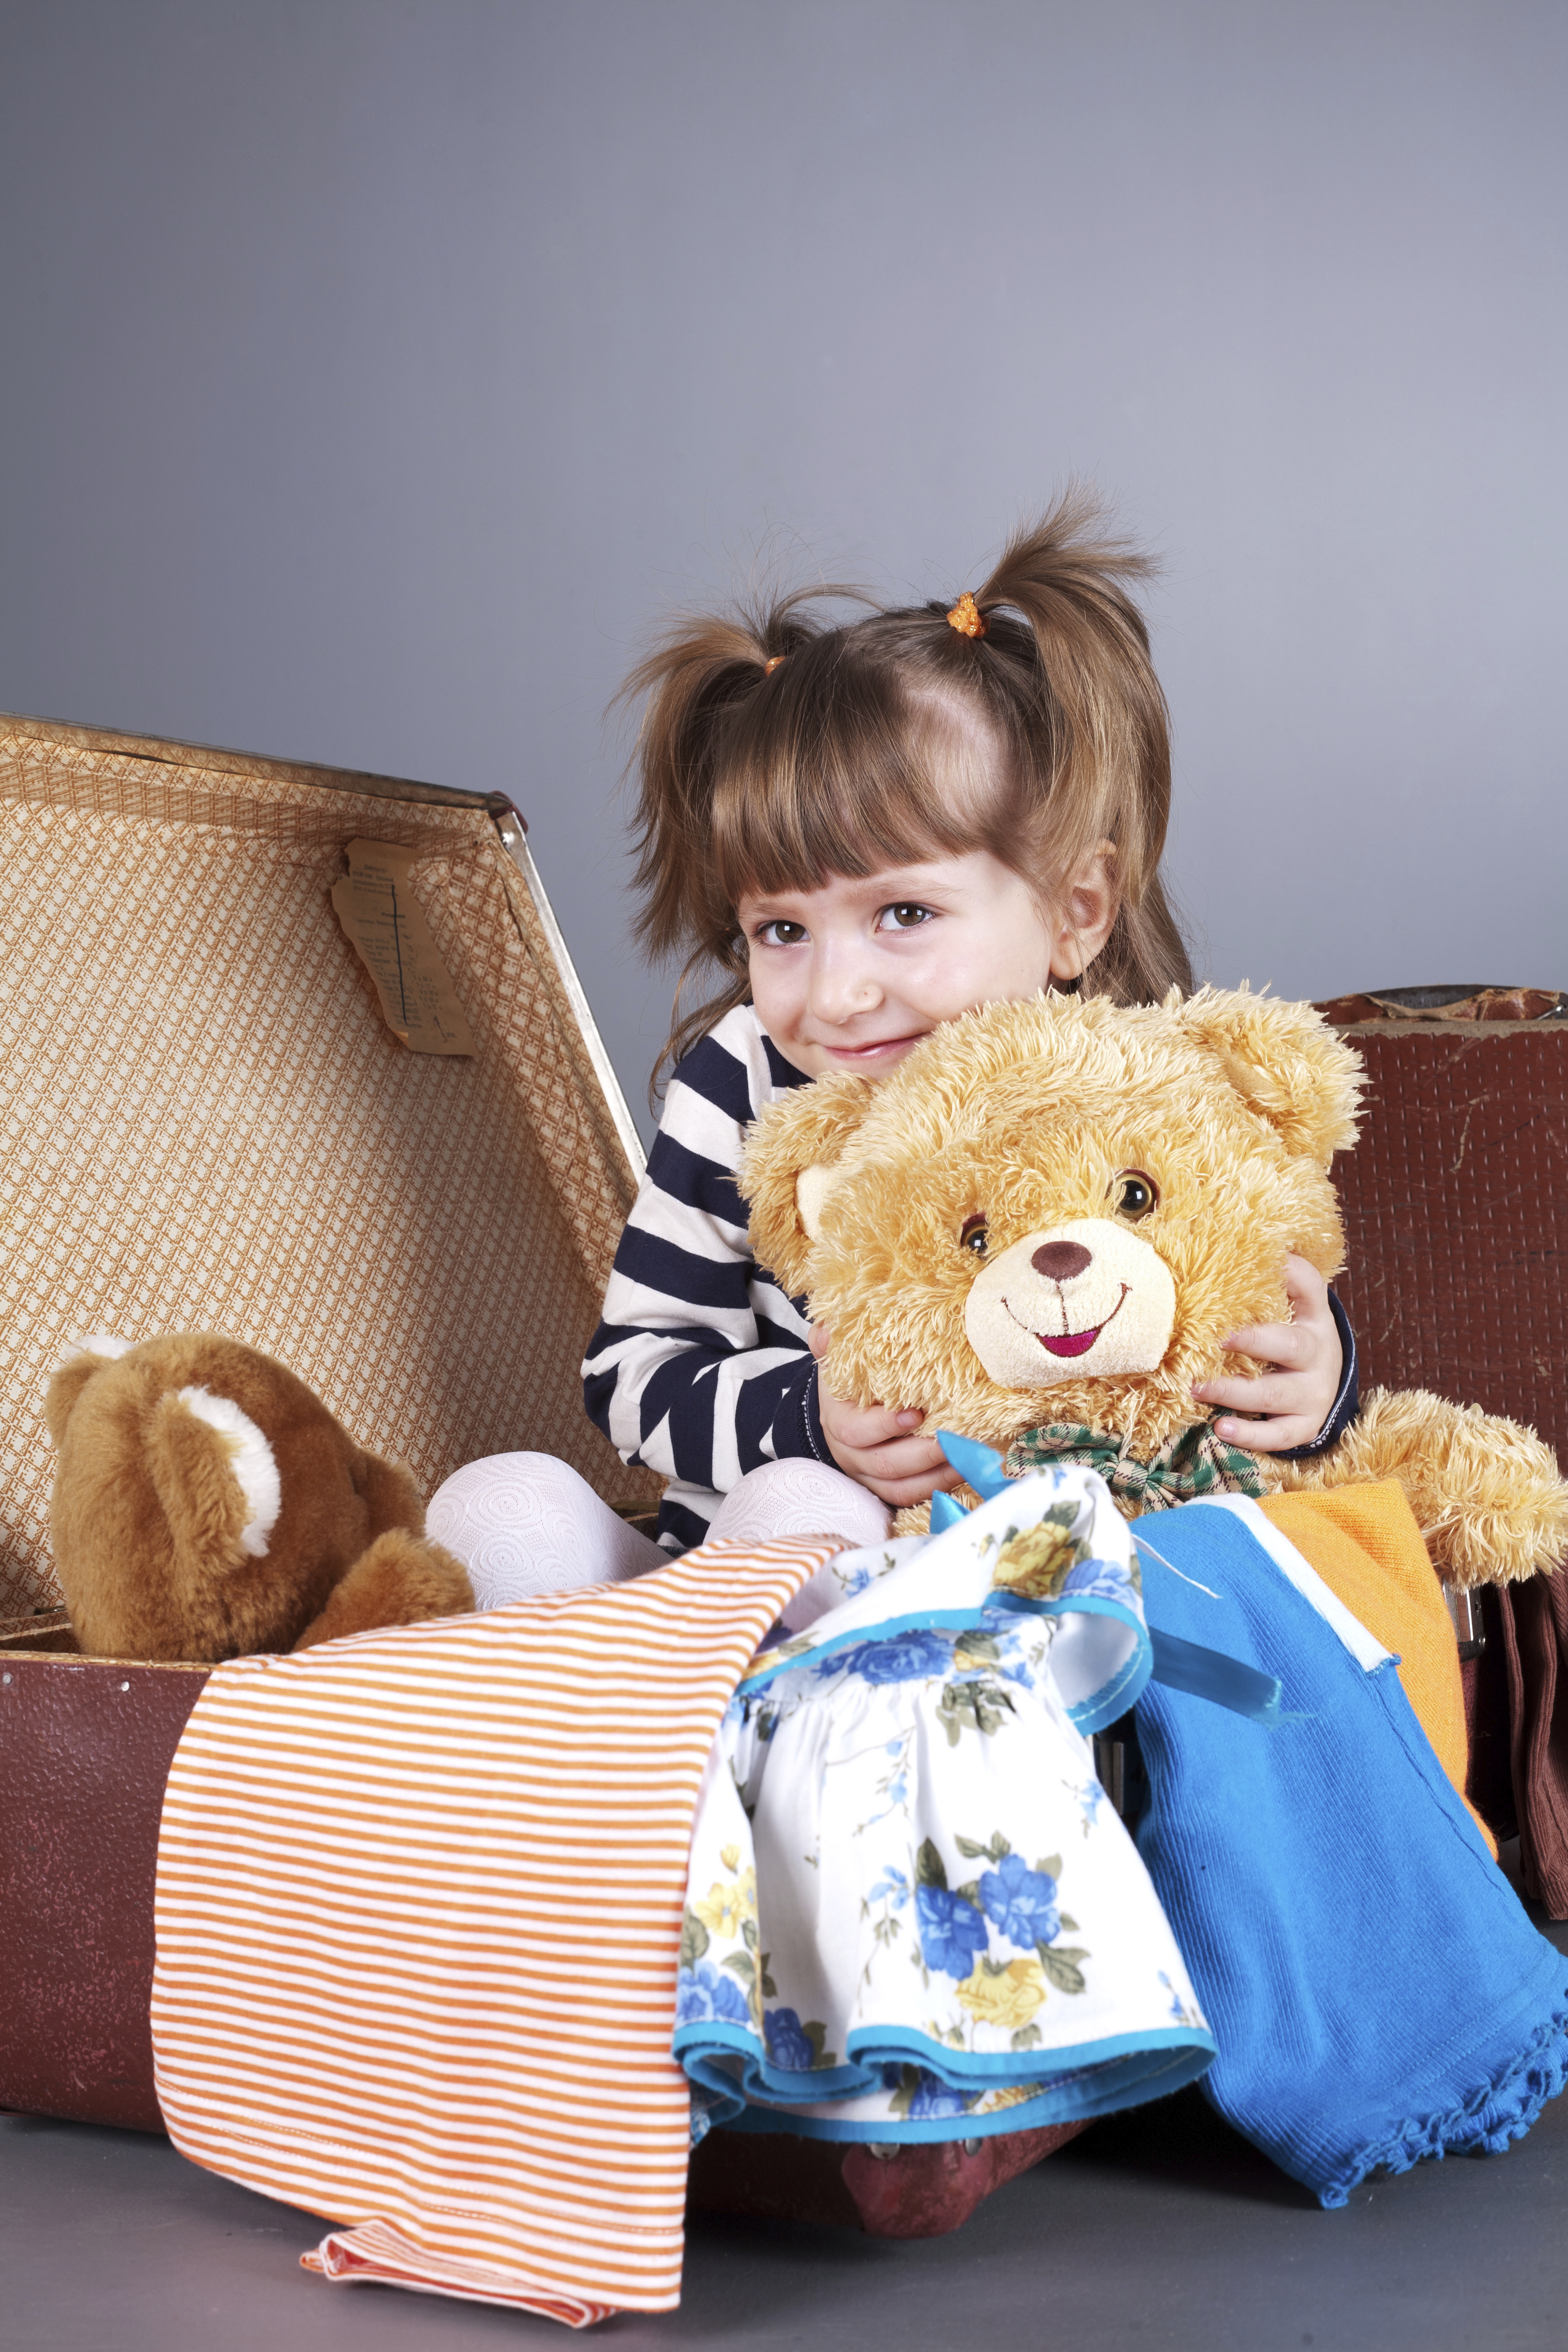 four-year girl joyfully sits in an old suitcase with toys and clothes